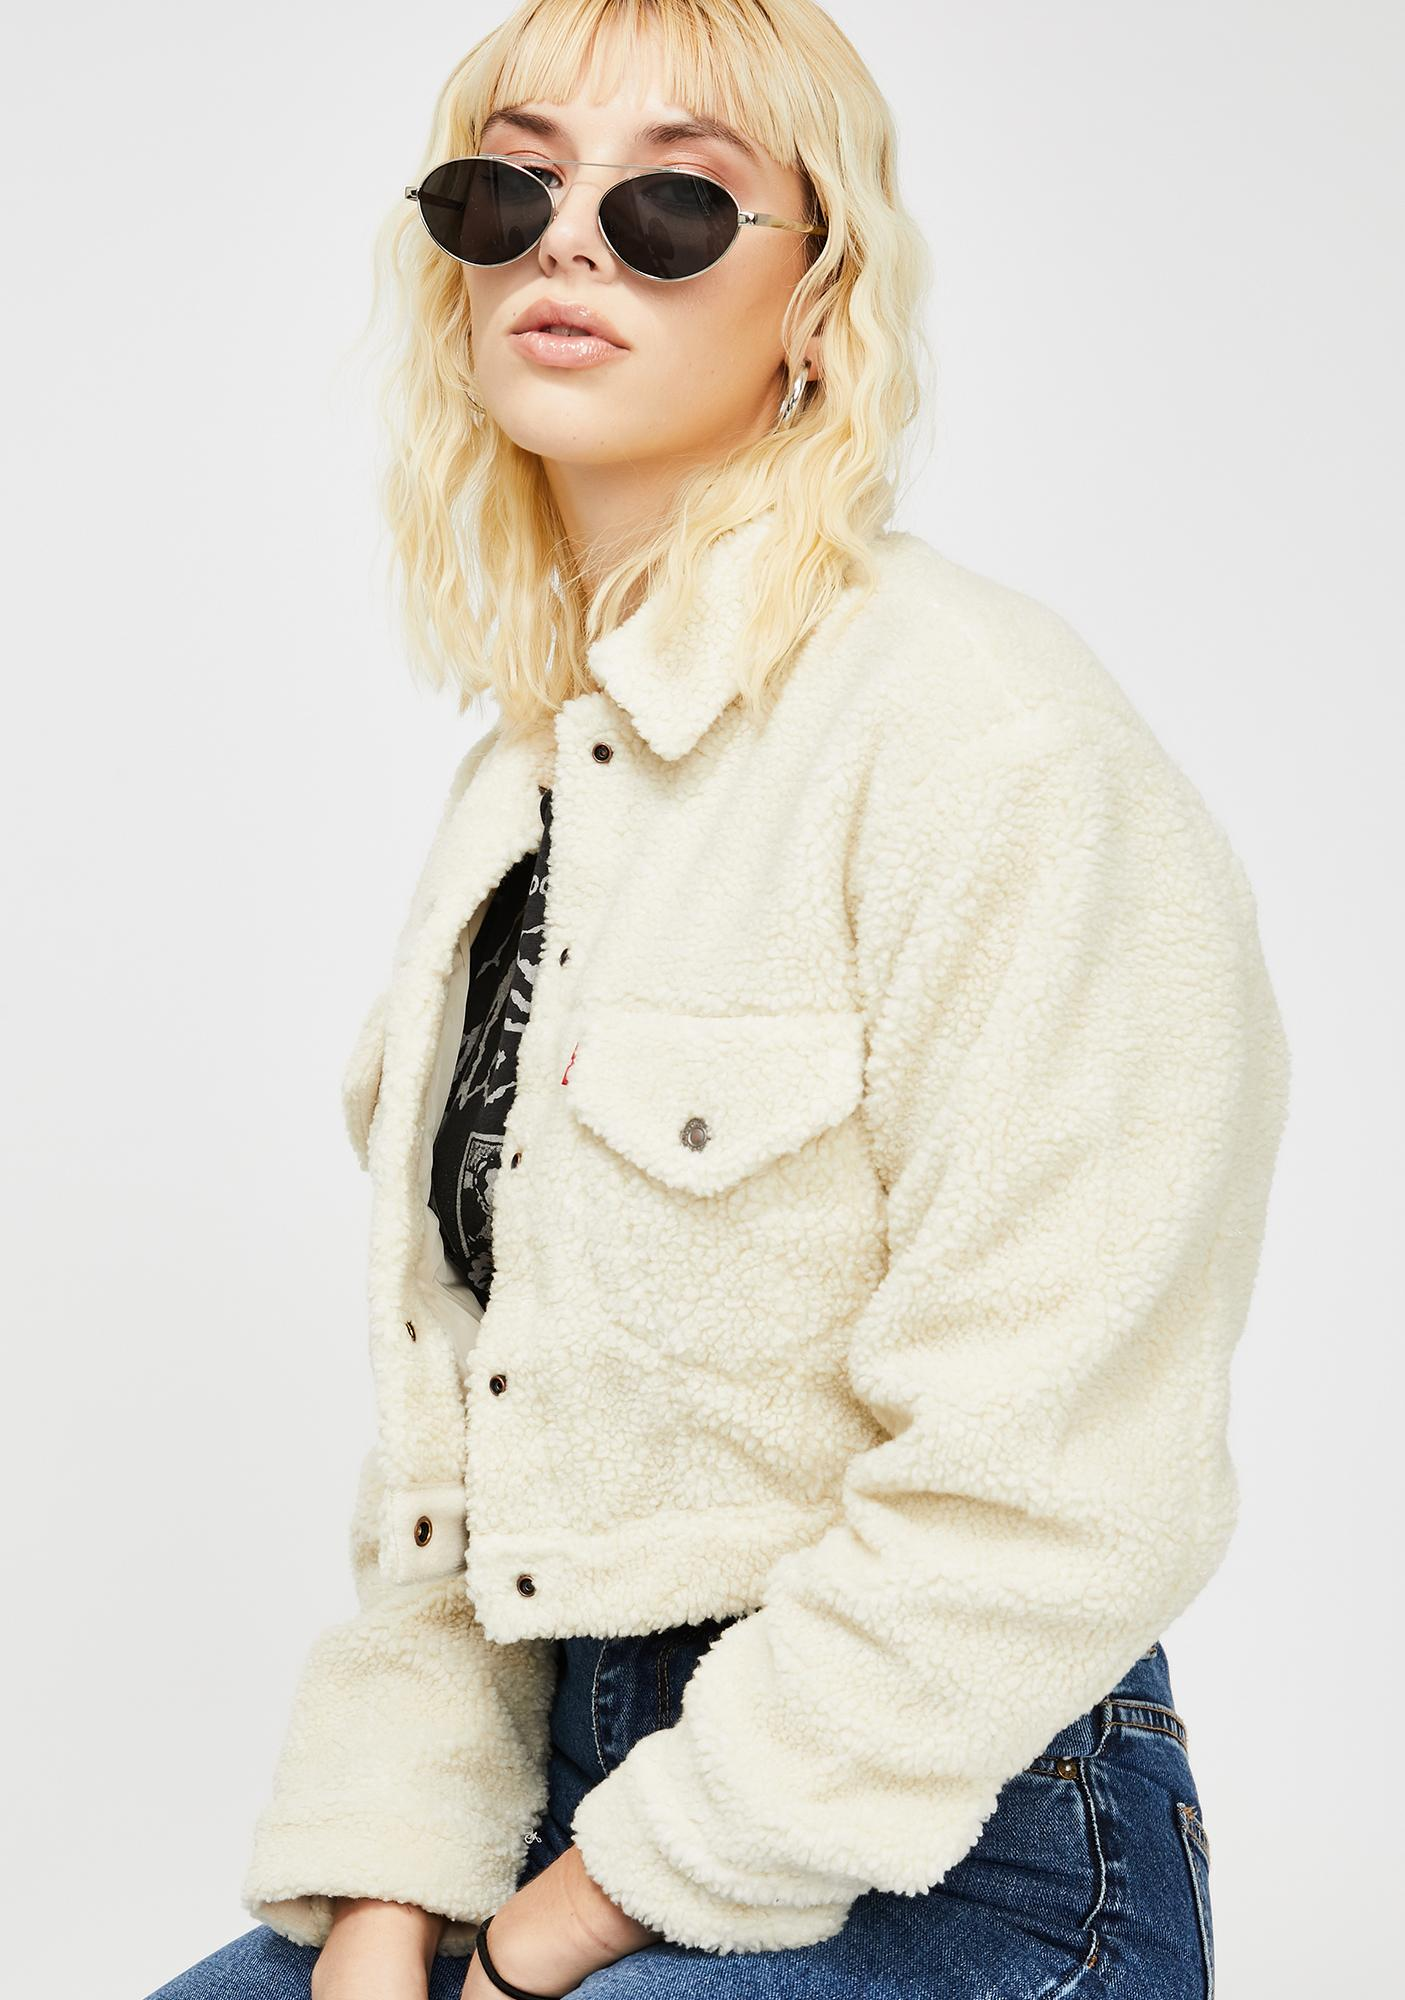 Levis Cloud Cream Cropped Sherpa Jacket